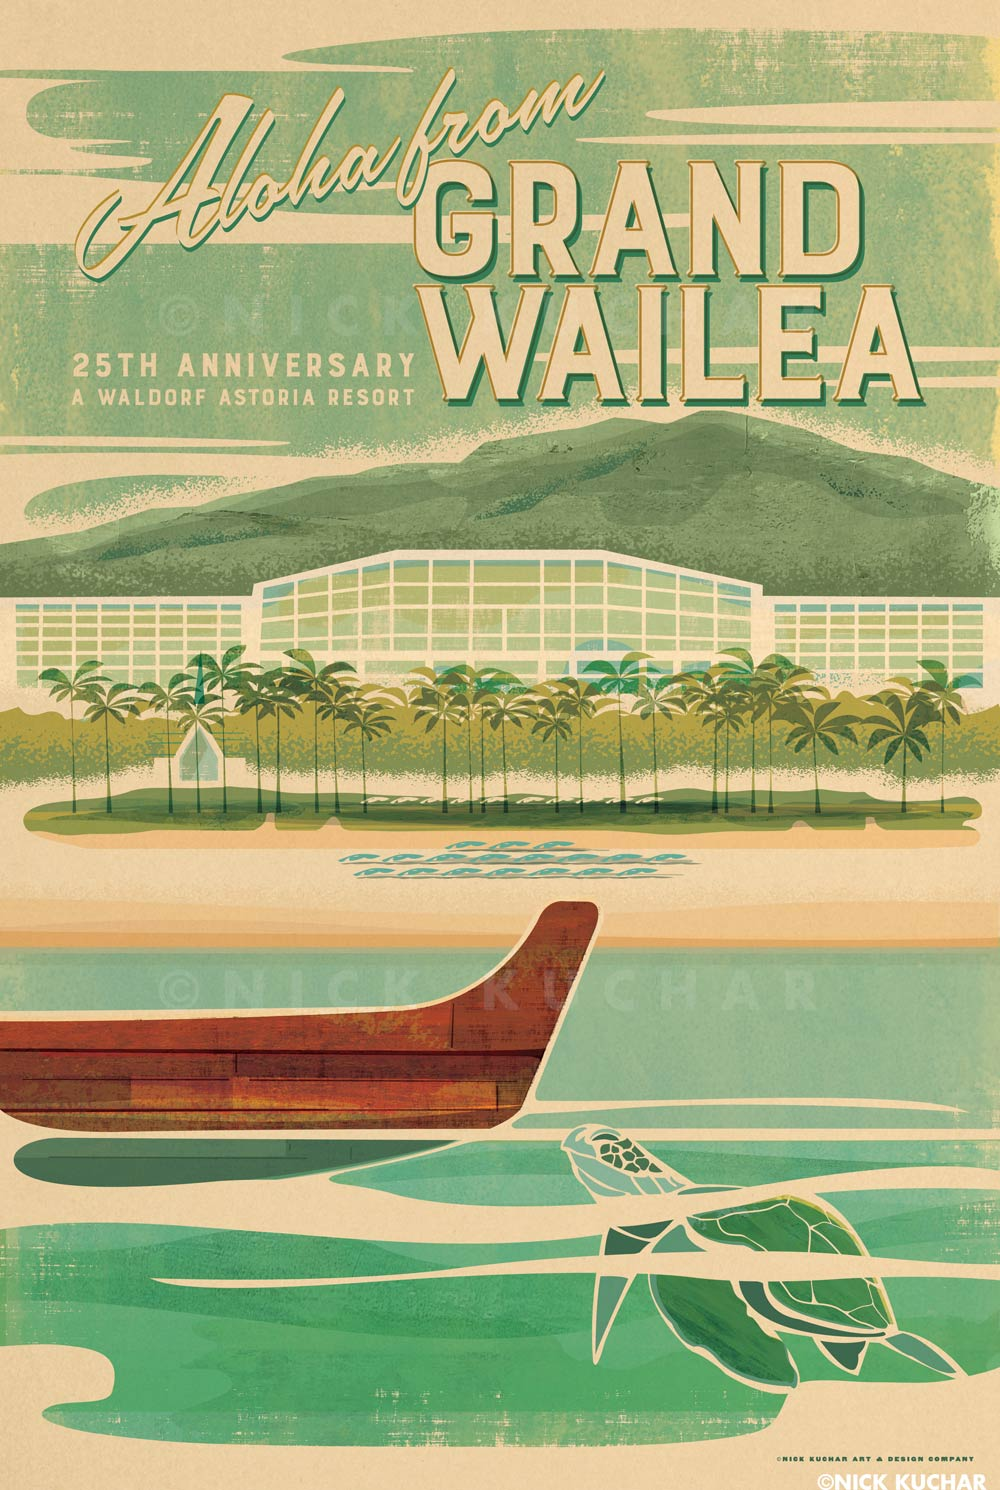 nick-kuchar-vintage-grand-wailea-travel-poster